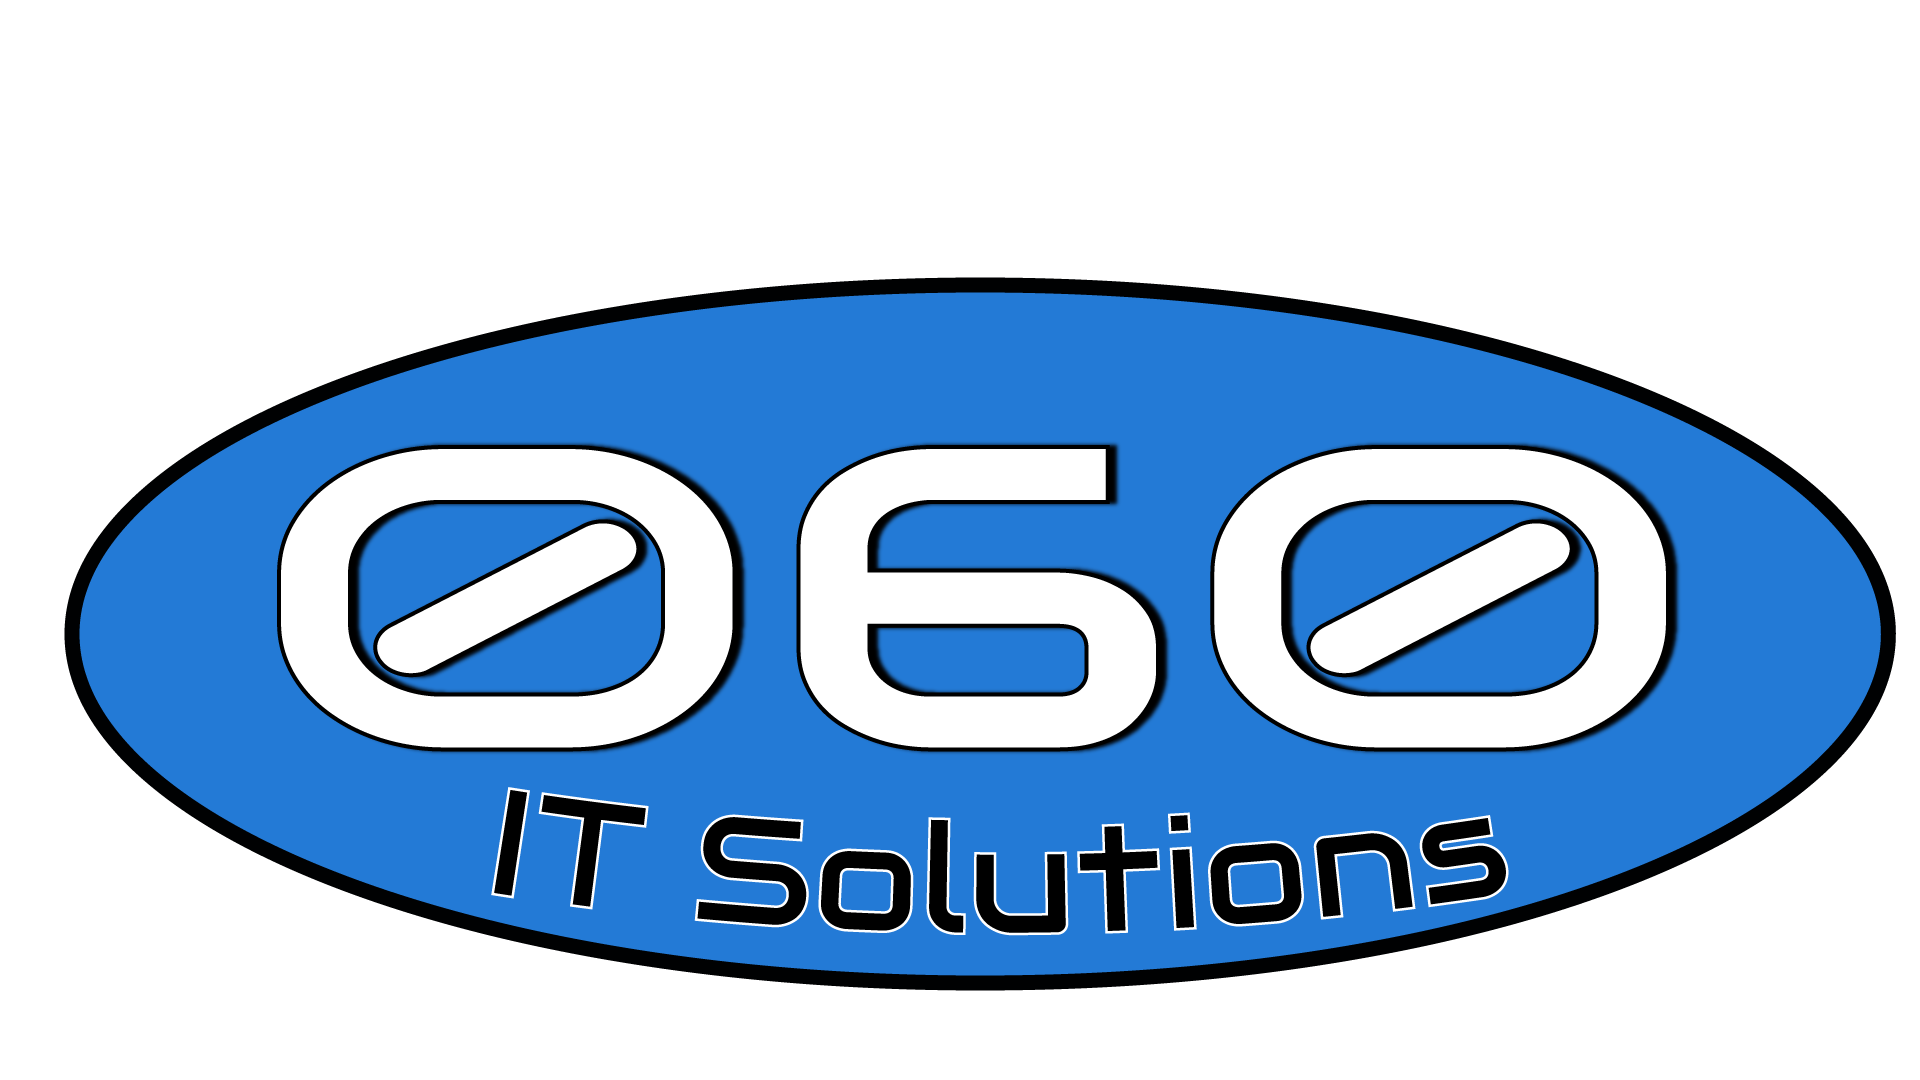 060 IT Solutions